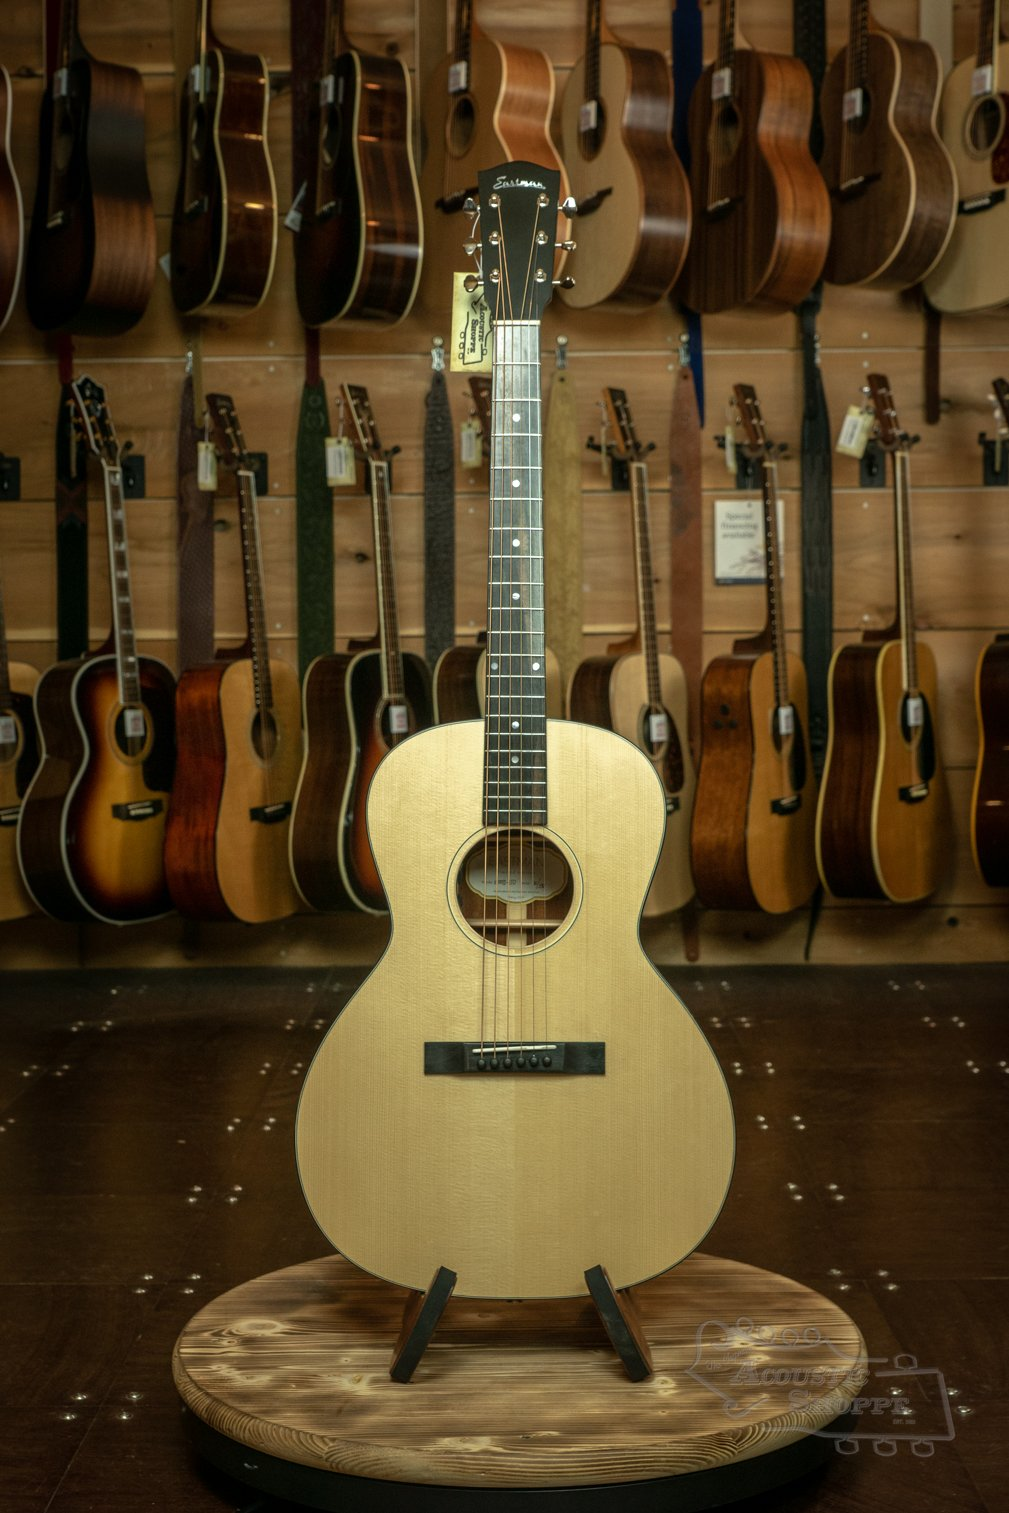 Eastman E1OOSS-LTD Adirondack Top Limited Edition Acoustic #41/250